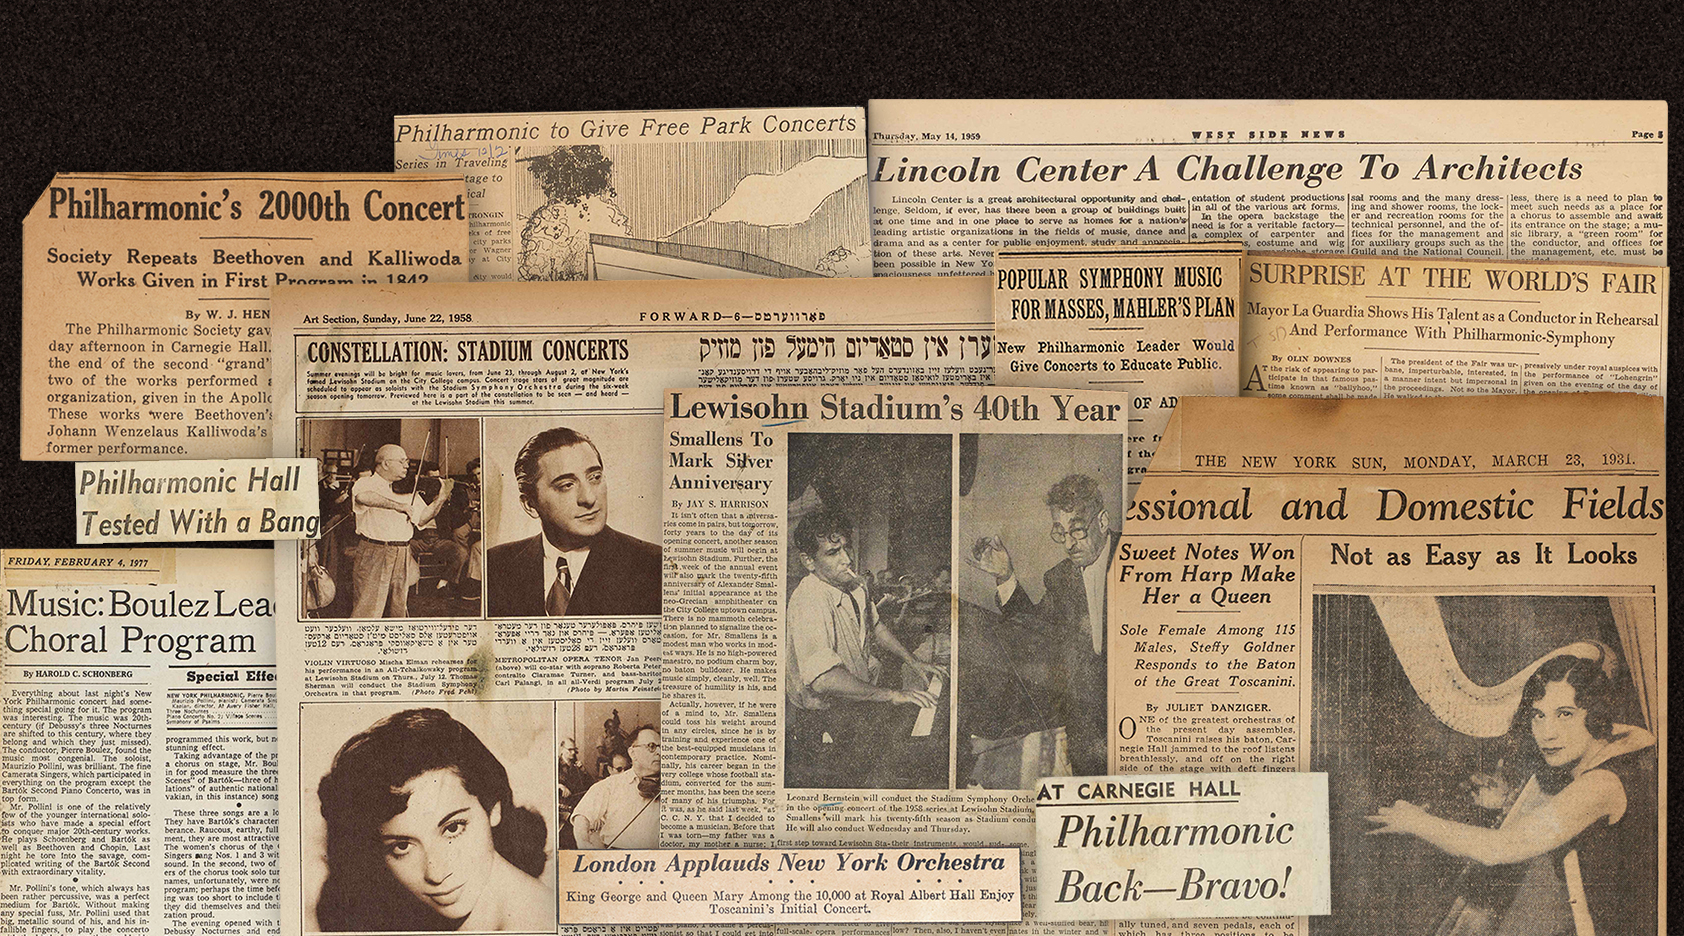 1dab09df7487 The New York Philharmonic Leon Levy Digital Archives has released more than  250 scrapbooks of press clippings from 1903 through 1979